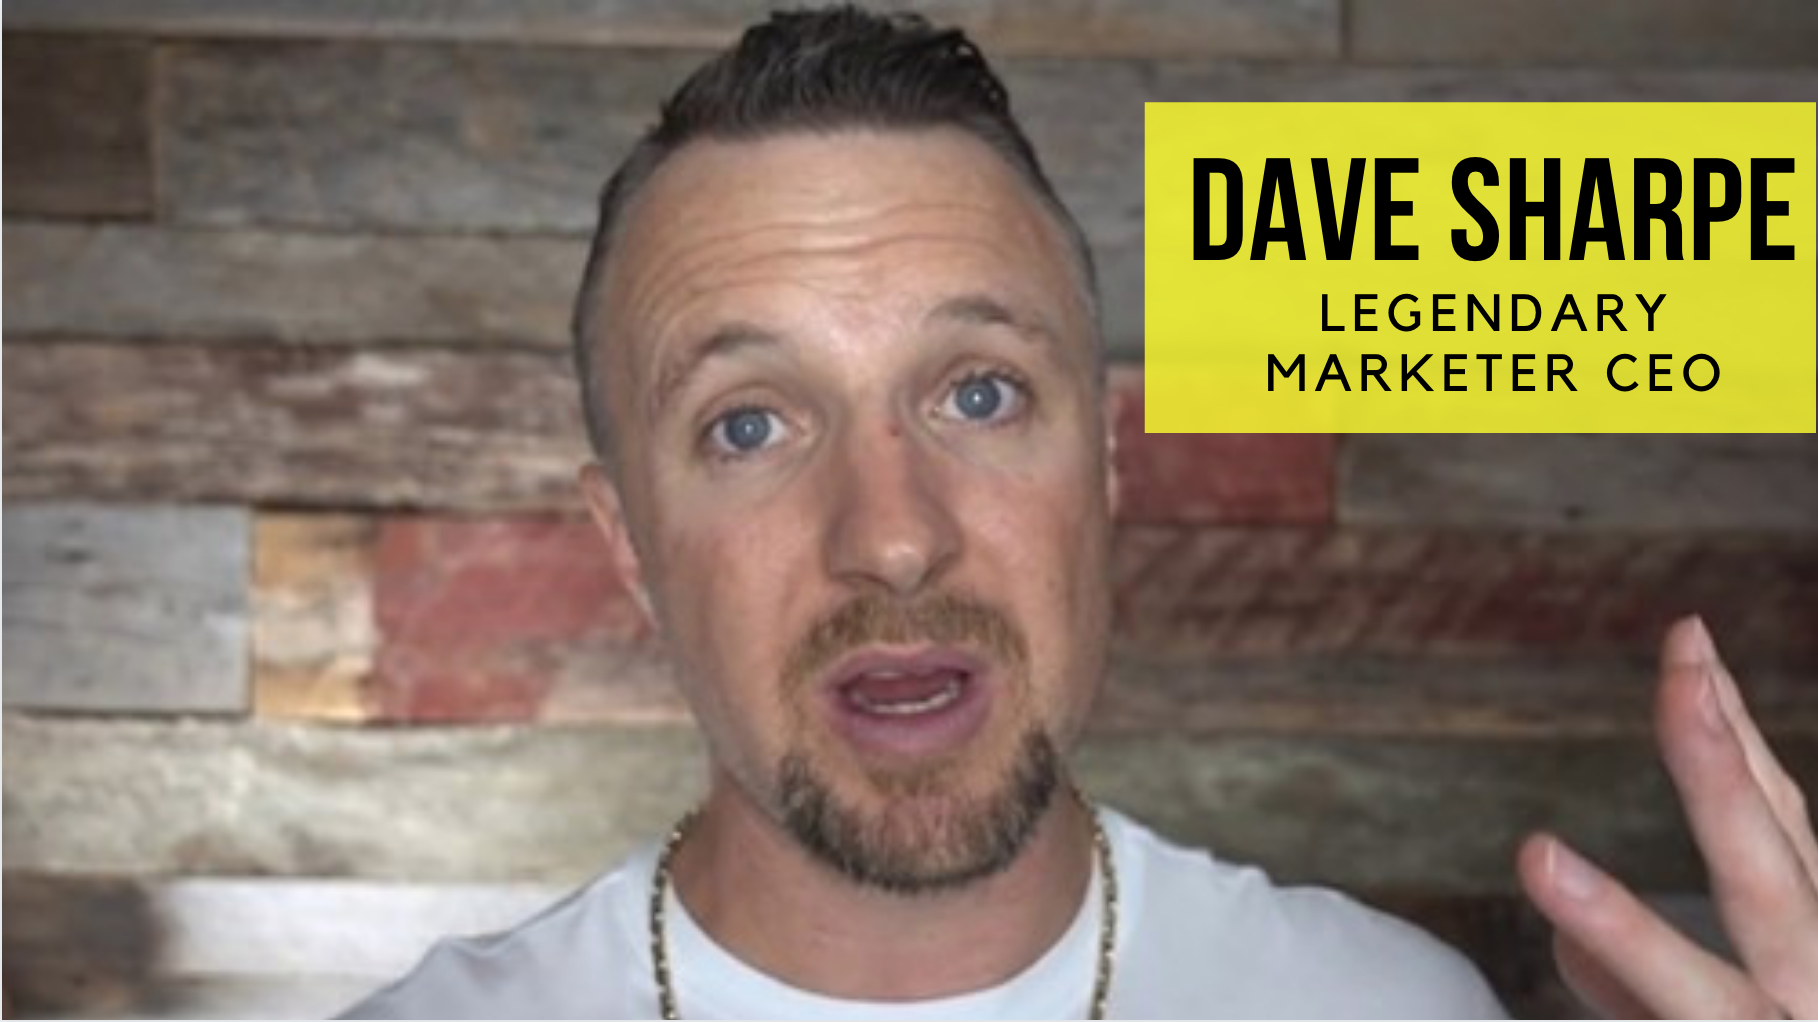 Dave Sharpe Legendary Marketer